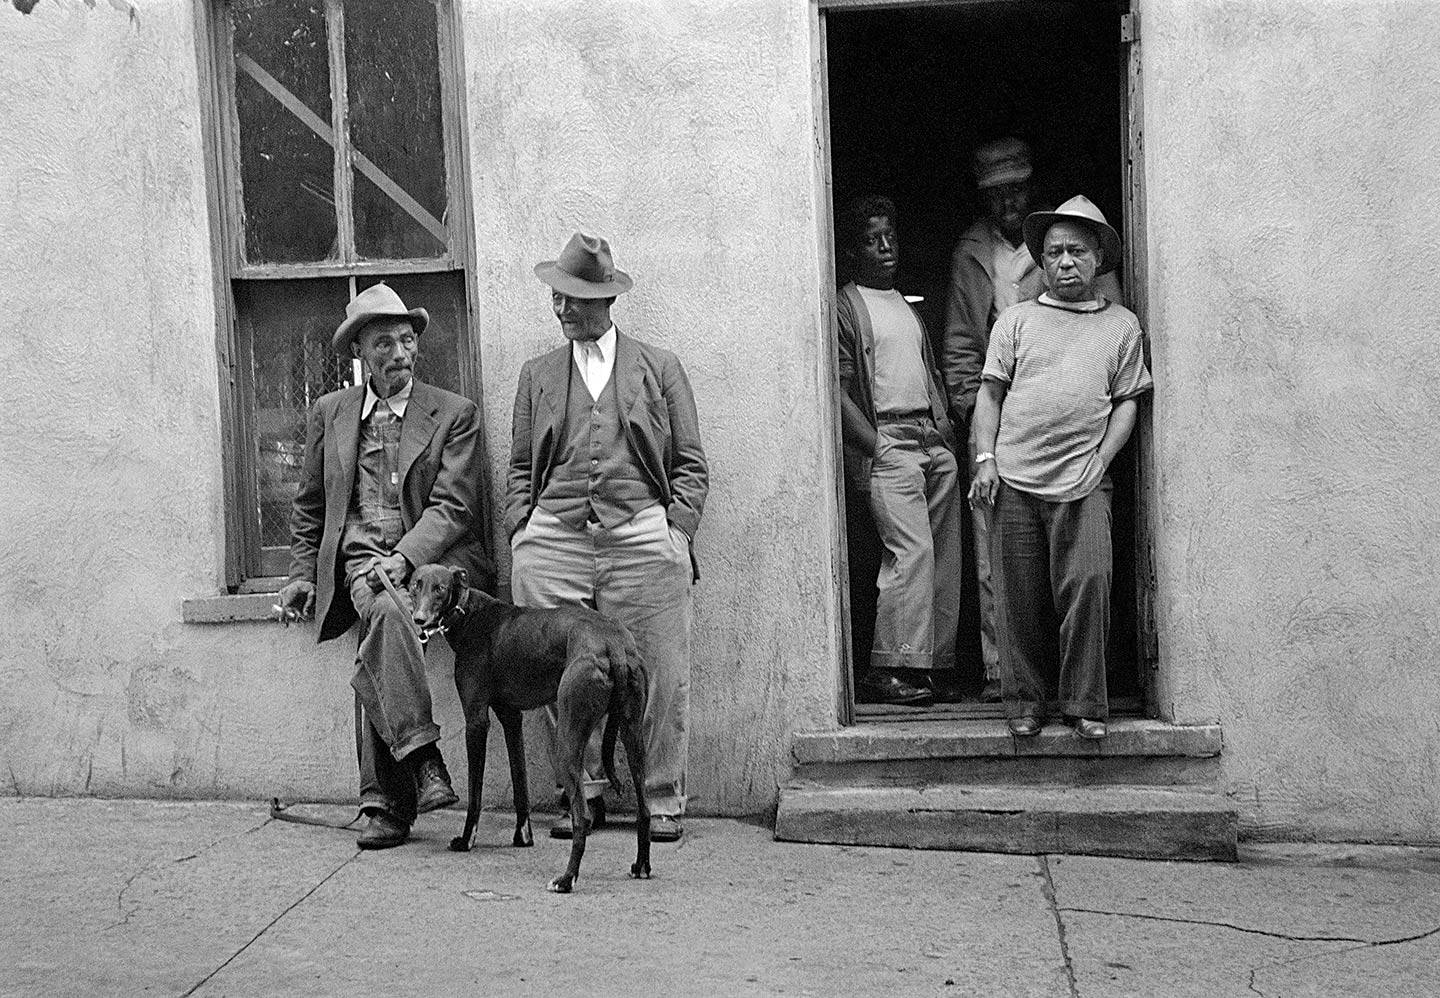 Pool Hall, Fort Scott, Kansas, 1950, photo of 5 men and a dog